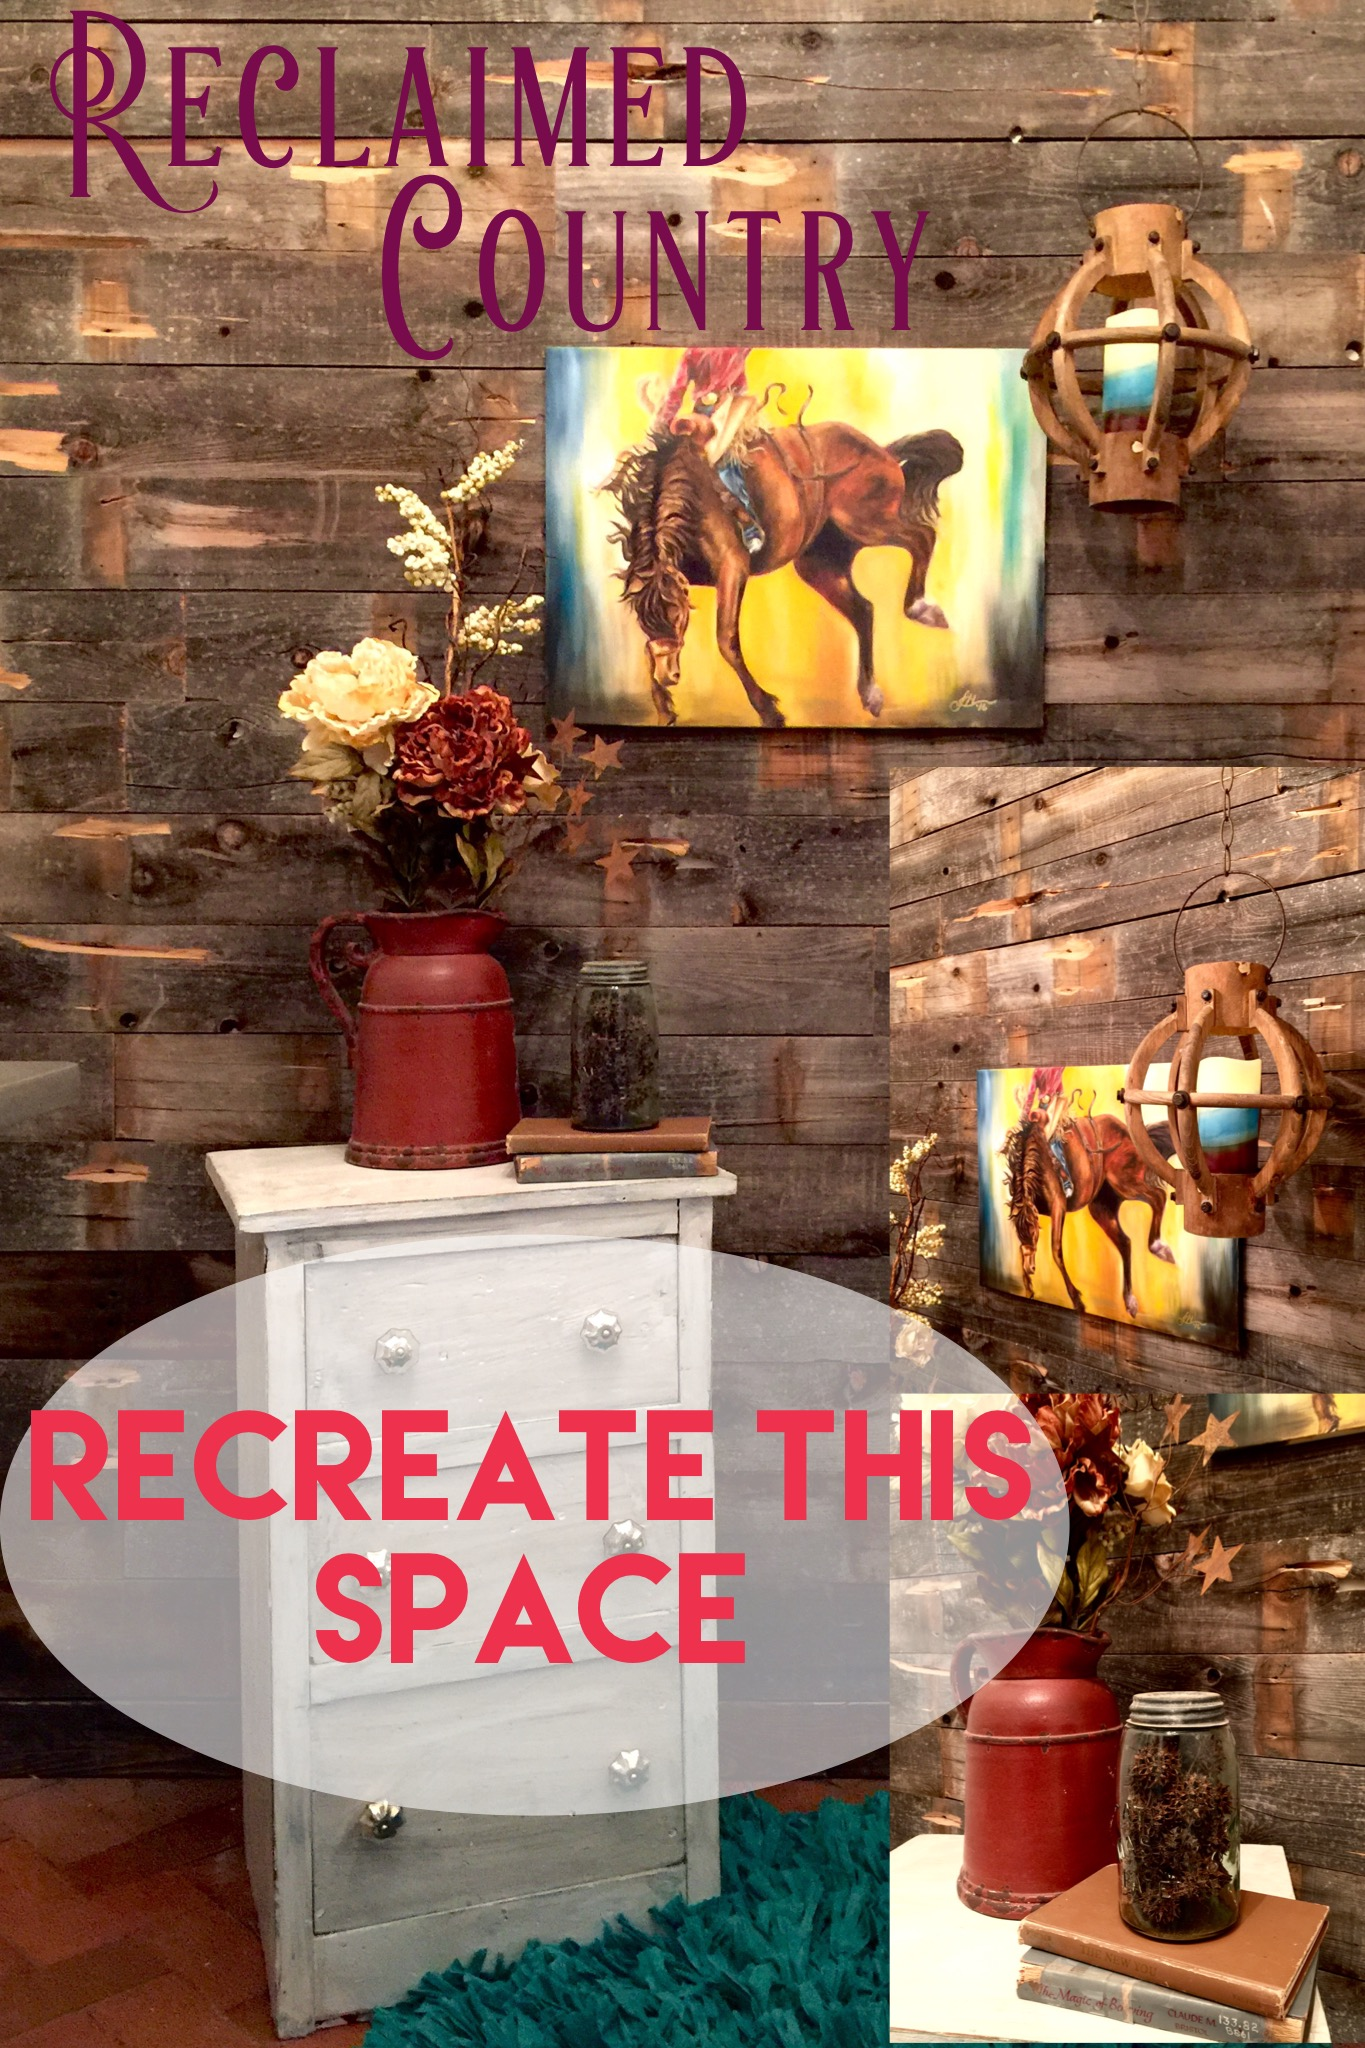 Reclaimed Country, Recreate this Space, Space 1.1, Shelbyathome.com